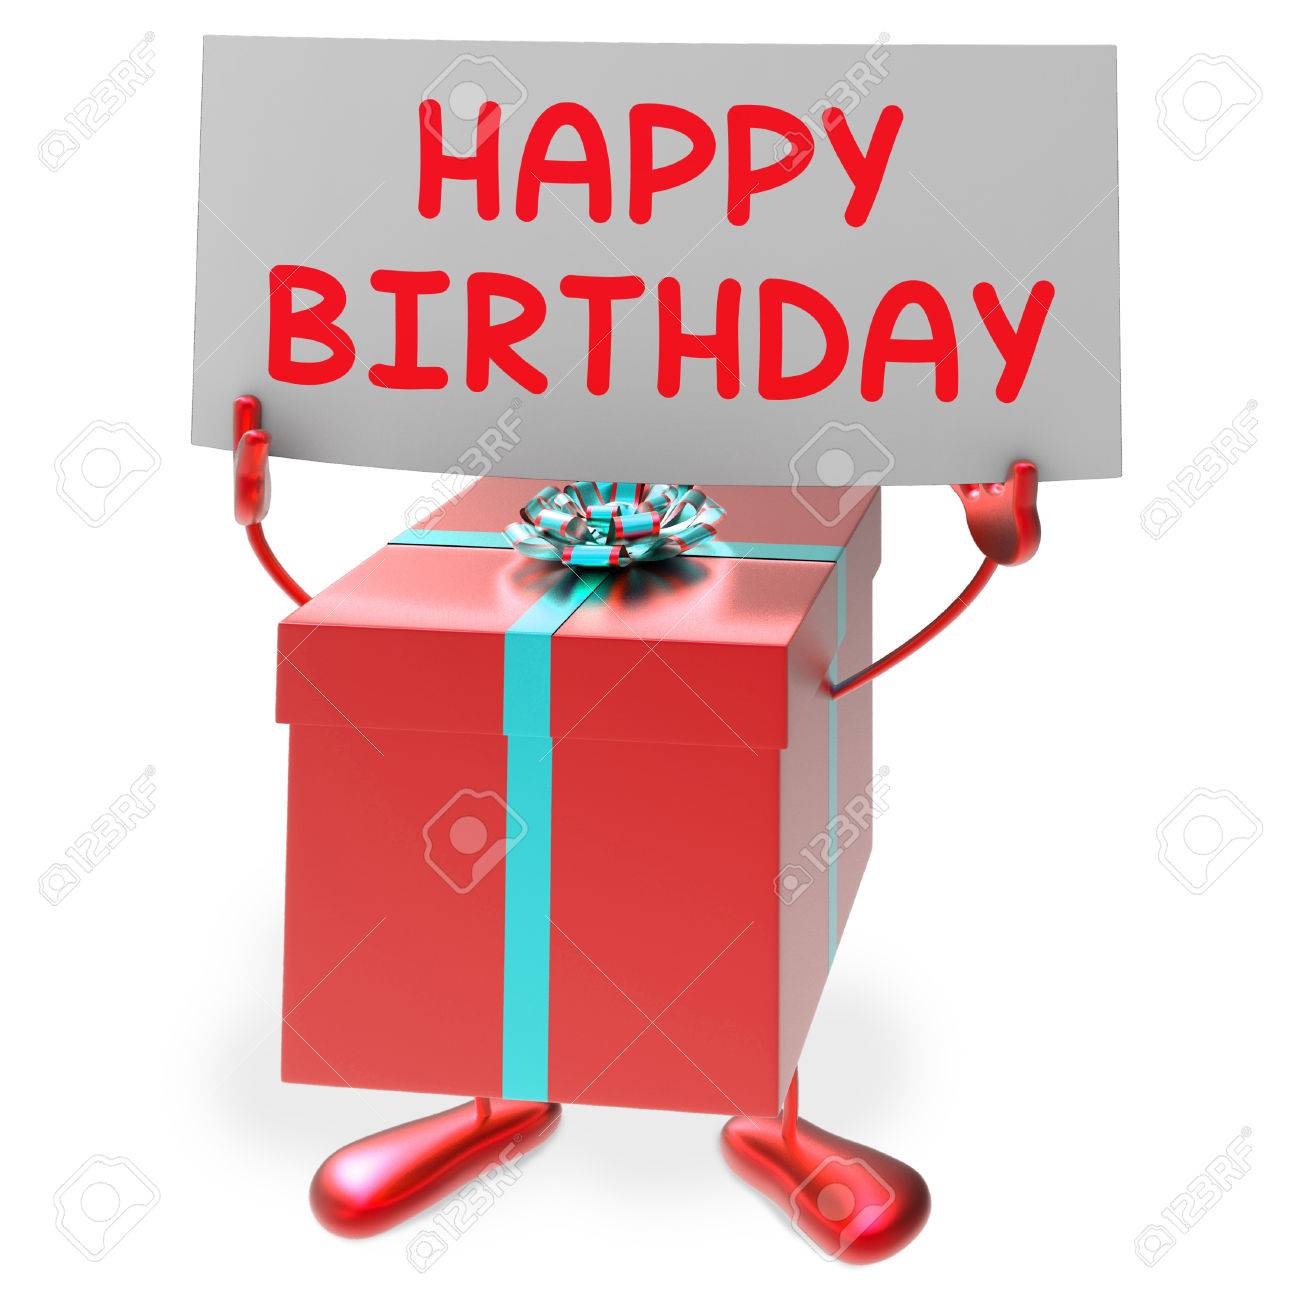 Happy Birthday Sign Meaning Presents And Gifts Stock Photo